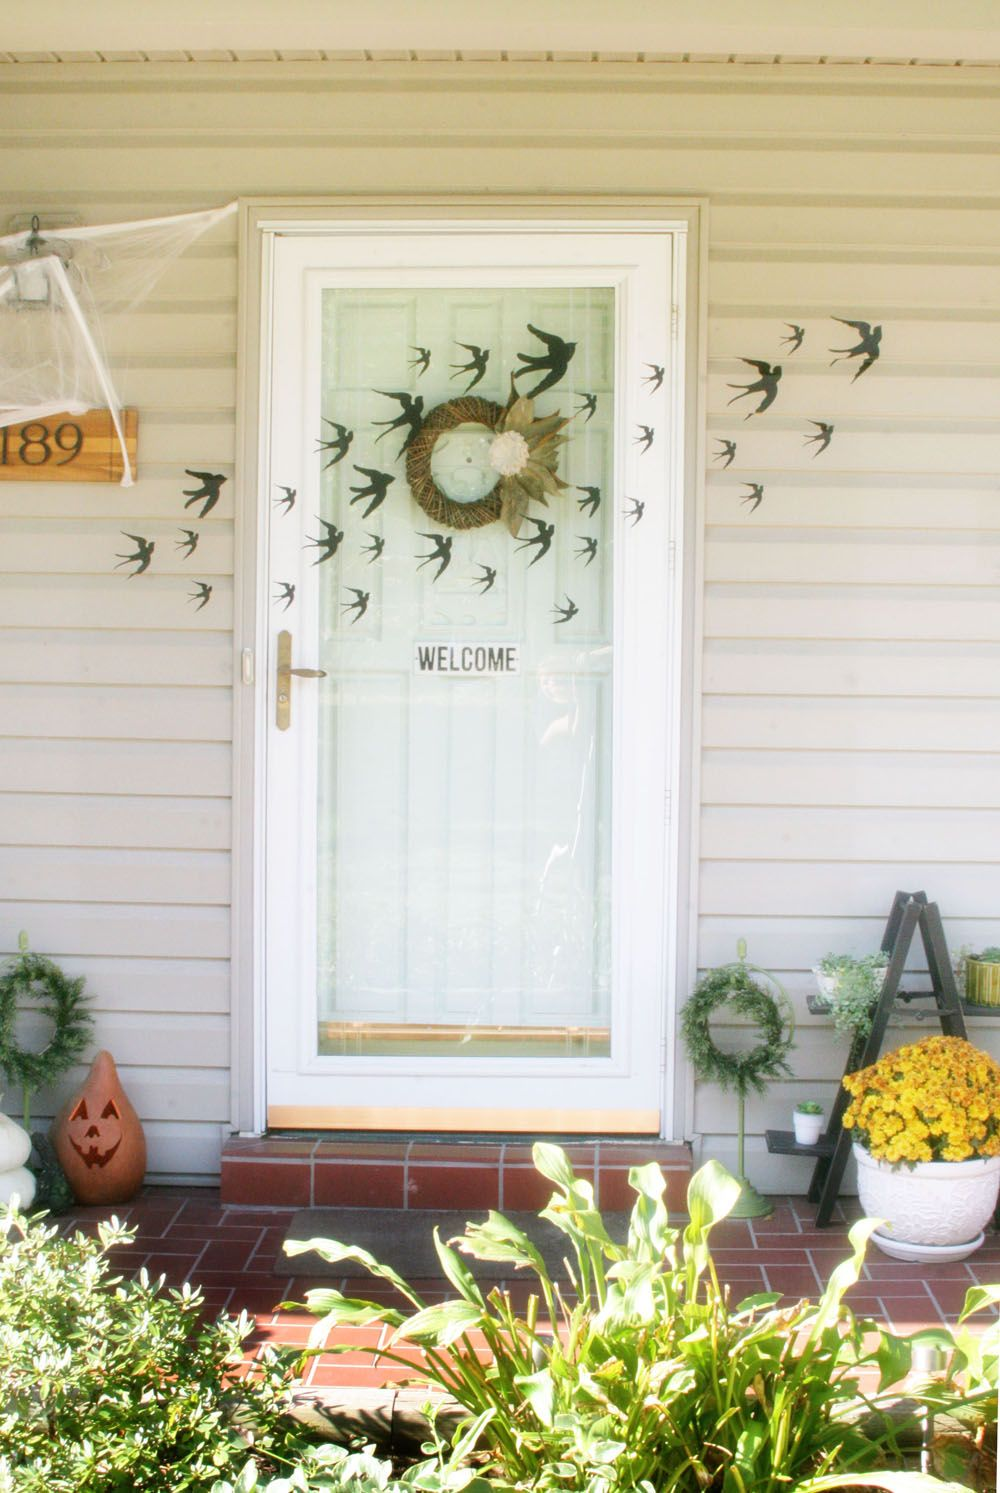 Spooky Halloween Decorations for Kids Spooky halloween decorations - Front Door Halloween Decoration Ideas